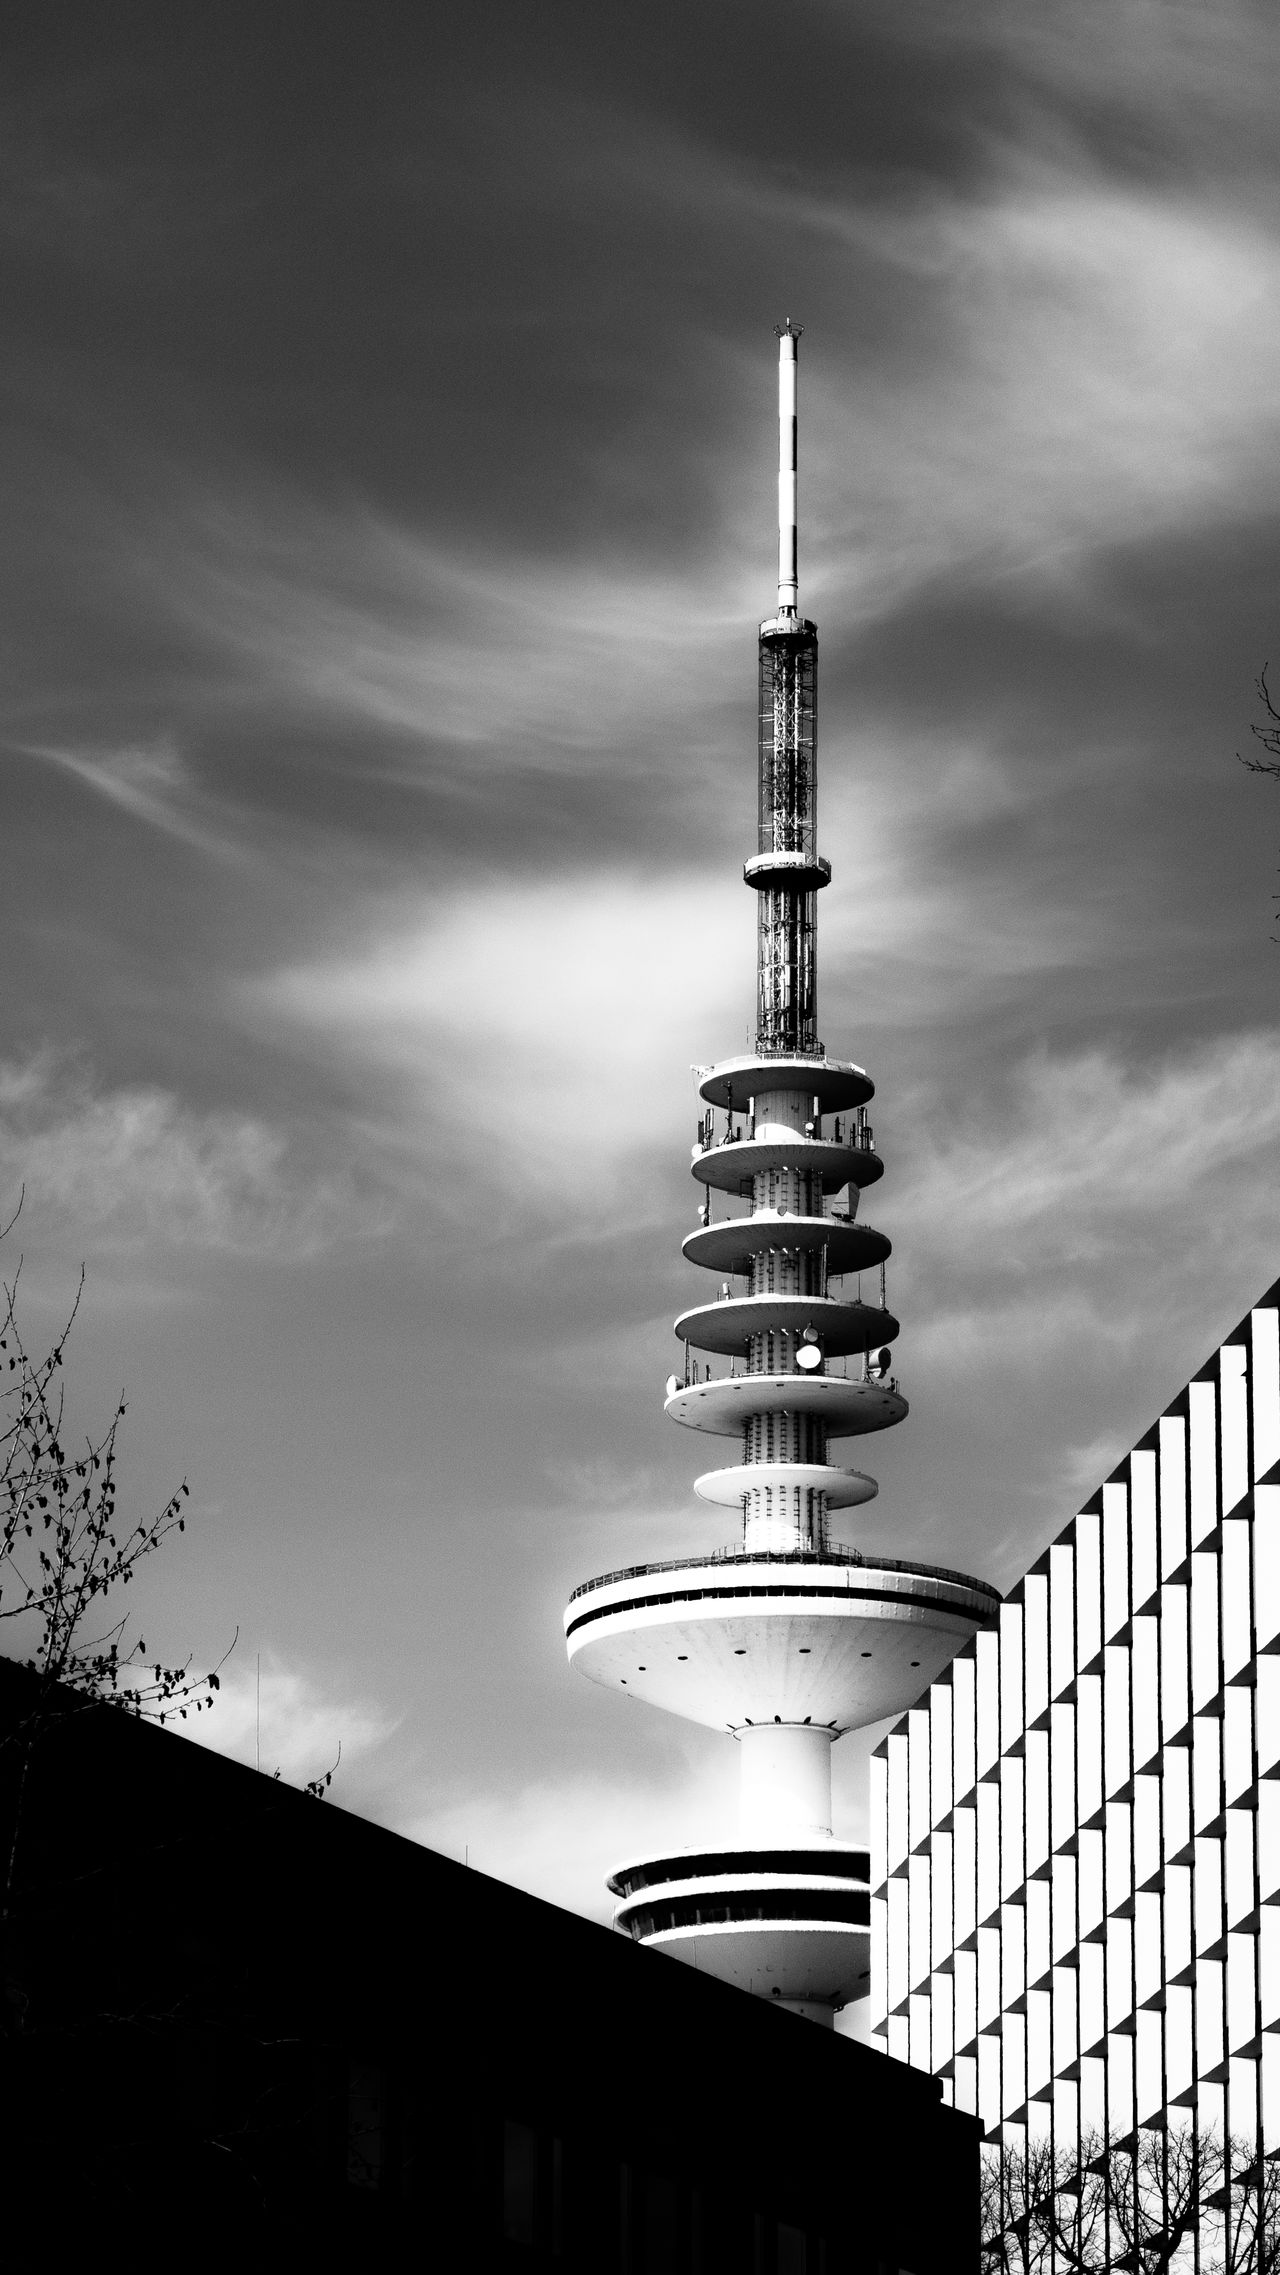 TV Tower Antenna Architecture Black And White Blackandwhite Broadcast Broadcasting Built Structure Bw Bw_collection City Cloud - Sky Communication Day Heinrich Hertz Turm Low Angle View Modern Needle No People Sky Skyscraper Top Tower Transmission TV Tower